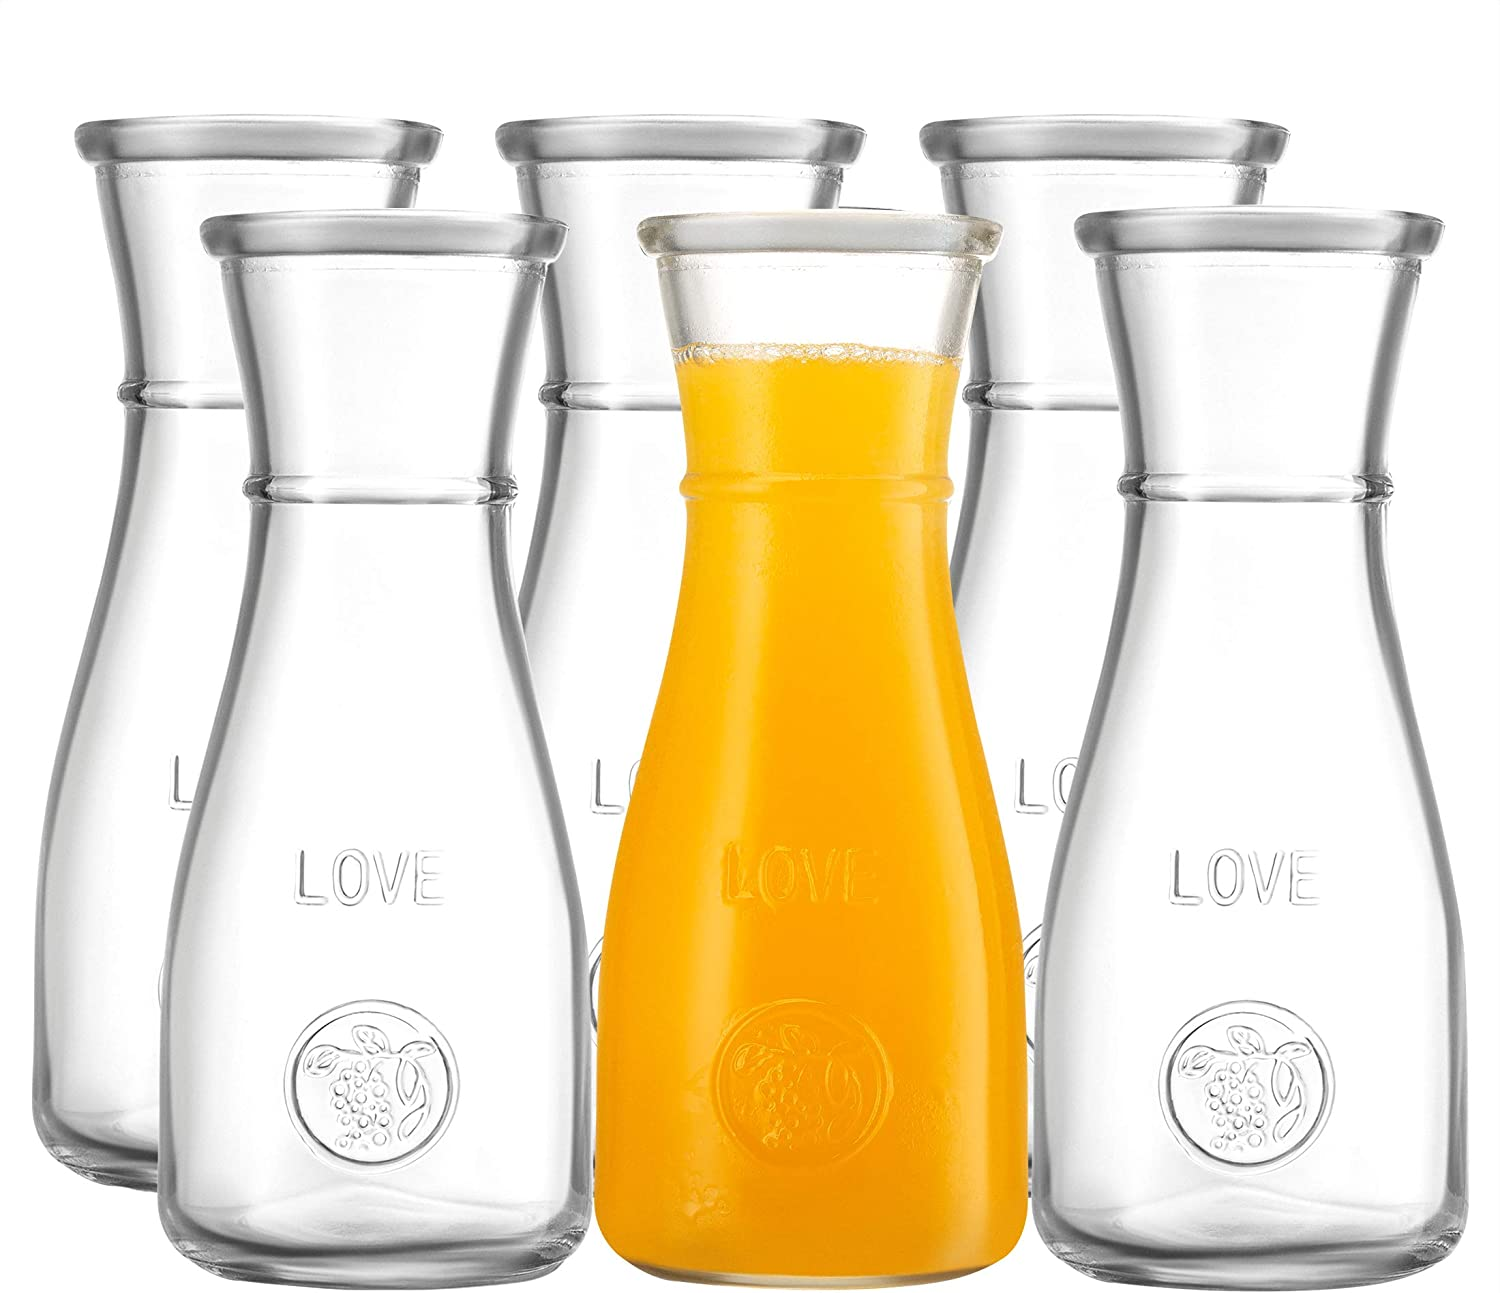 500 ml Glass Carafe - 6 Pack - The LOVE Drink Pitcher and Elegant Wine Decanter, Narrow Neck For Easy Grip, Wide Mouth for Classic Pouring - Great for Parties and Events – by Kitchen Lux